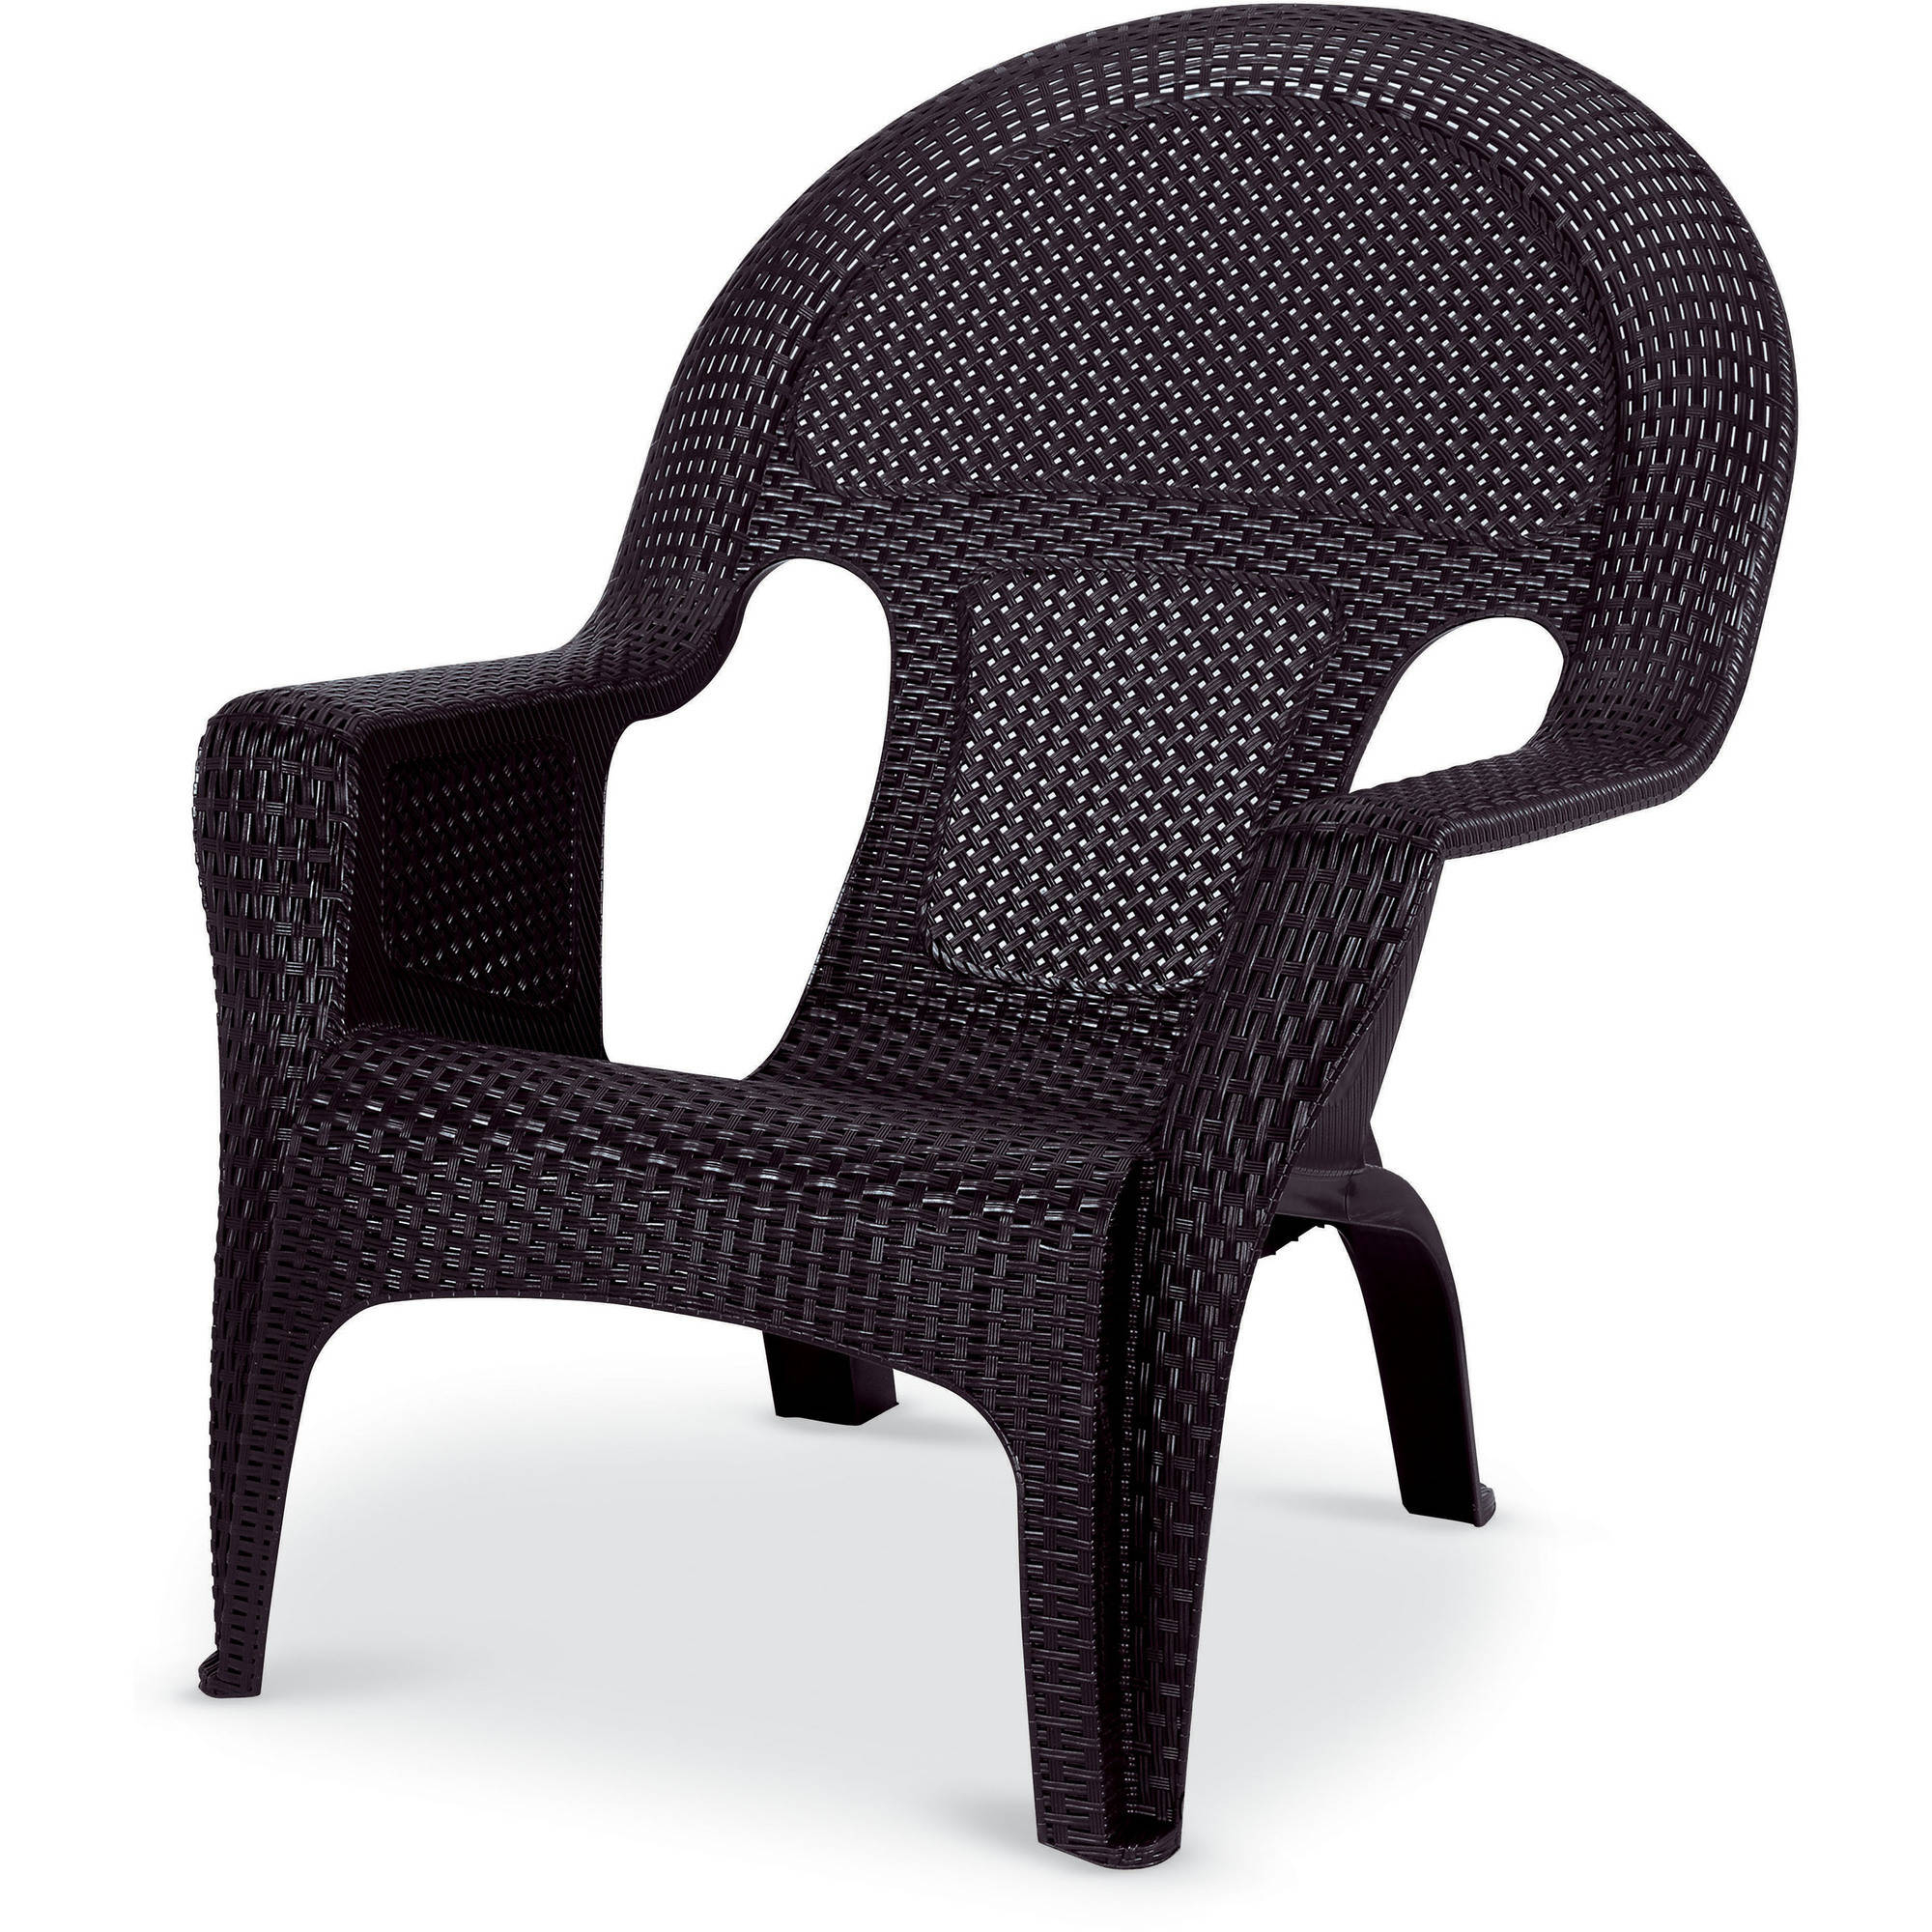 US Leisure Resin Wicker Lounge Chair, Coffee   Walmart.com